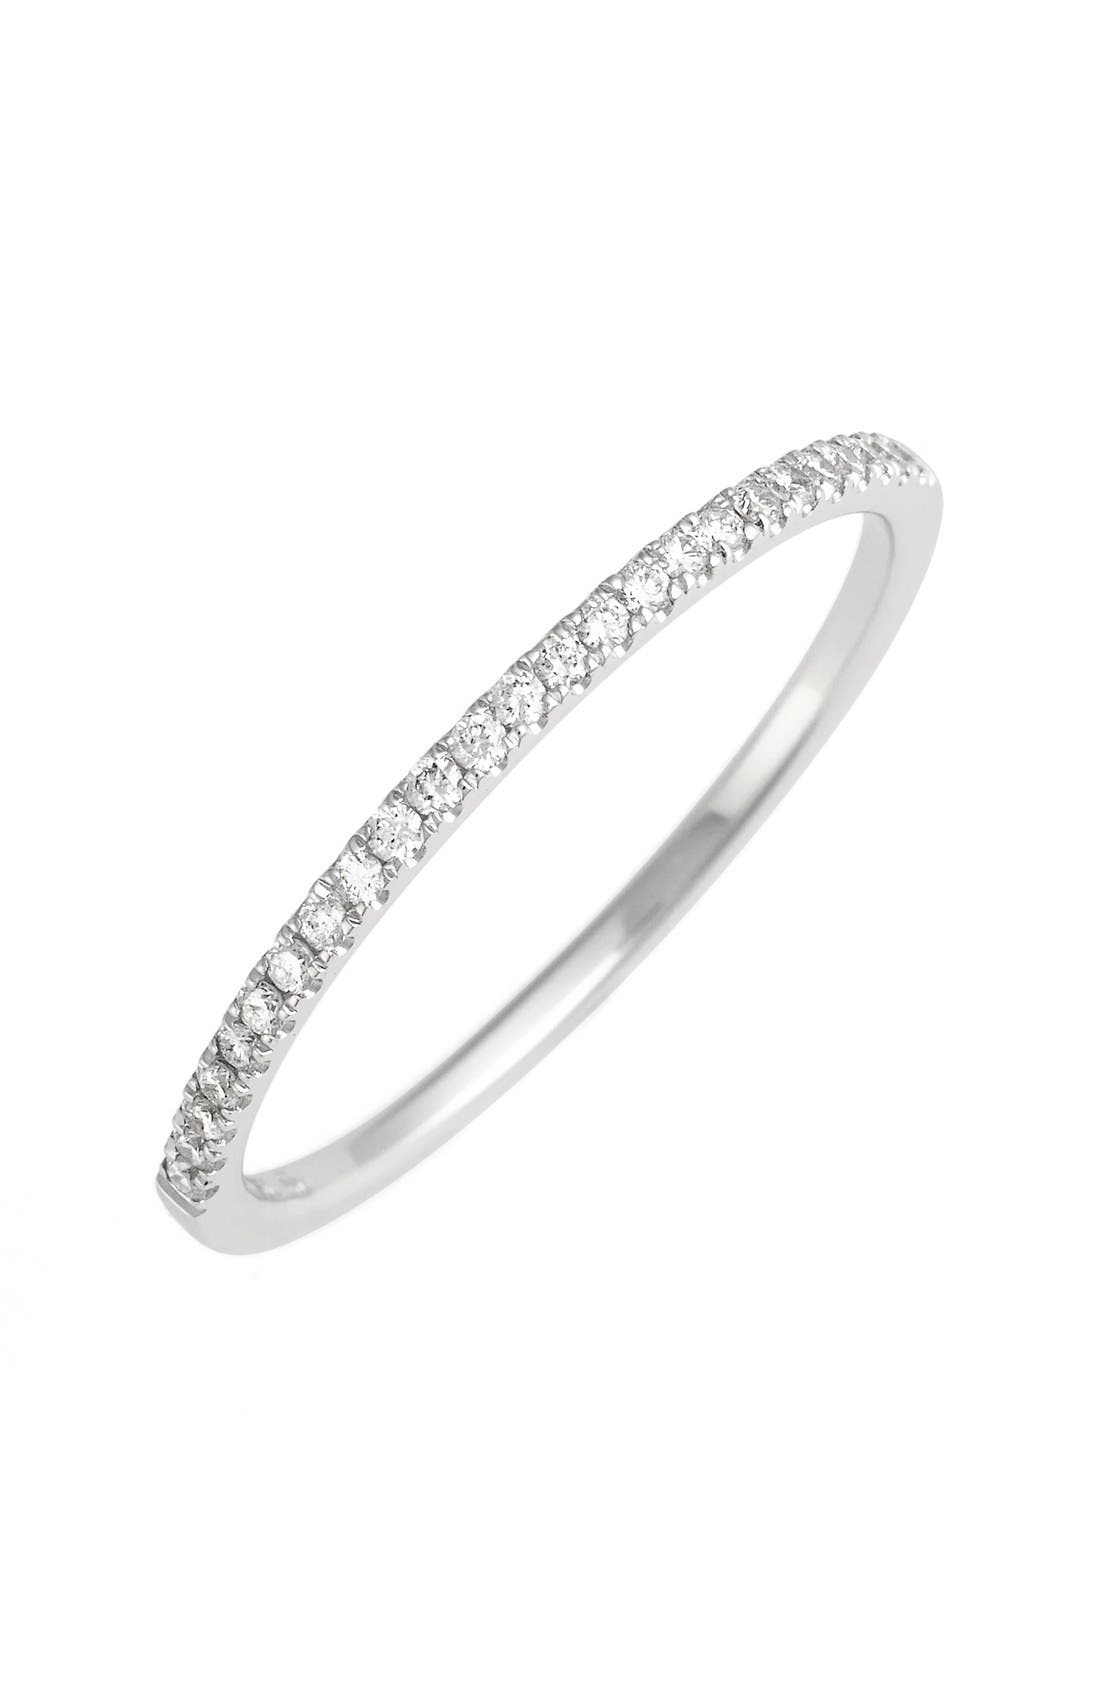 Main Image - Bony Levy 'Stackable' Straight Diamond Band Ring (Nordstrom Exclusive)